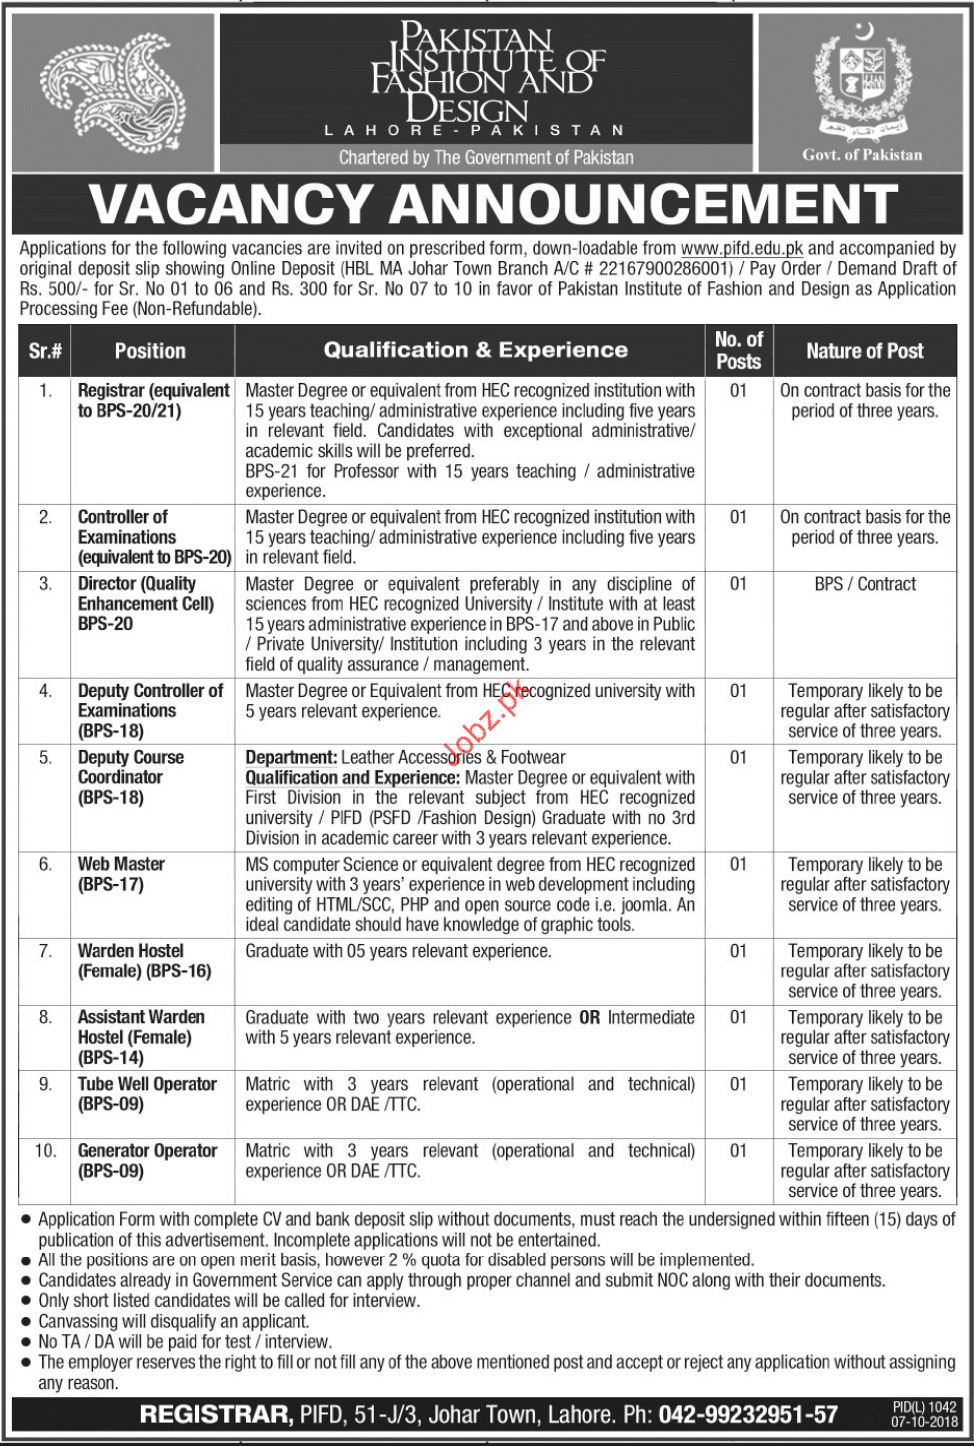 Registrar Jobs In Pakistan Institute Of Fashion Design 2020 Job Advertisement Pakistan